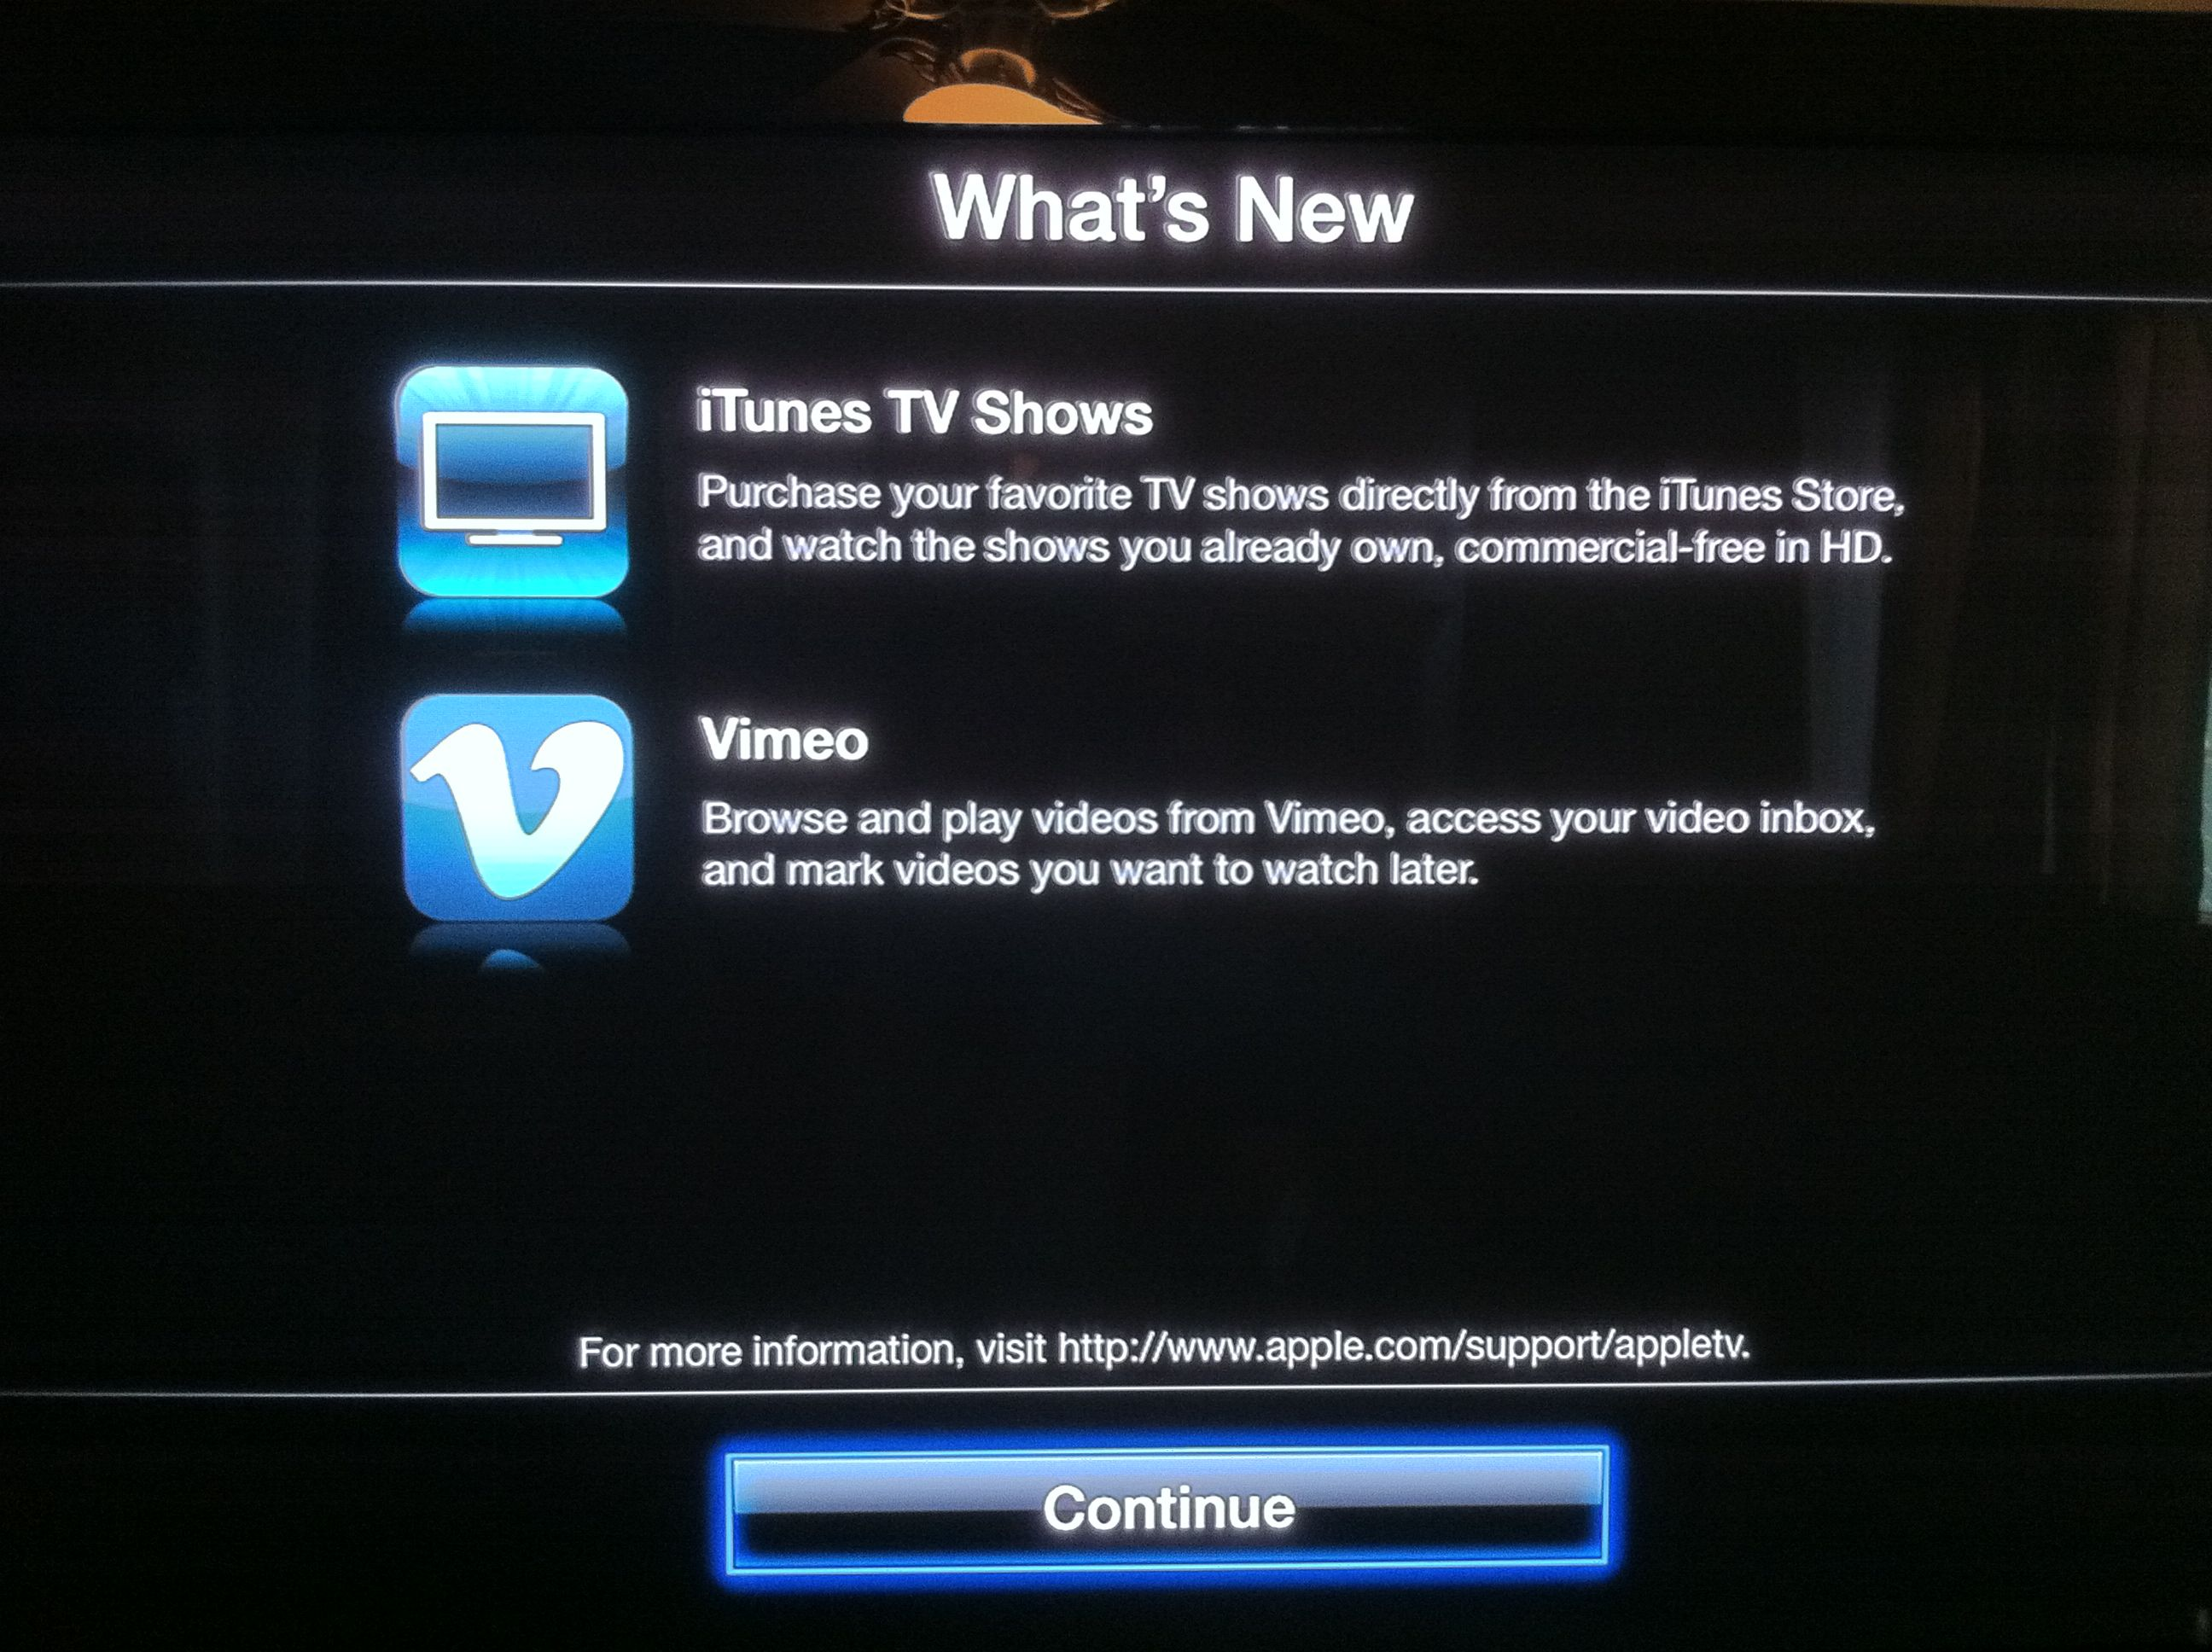 Apple TV iOS 4 3 streams TV shows from iCloud and Vimeo support